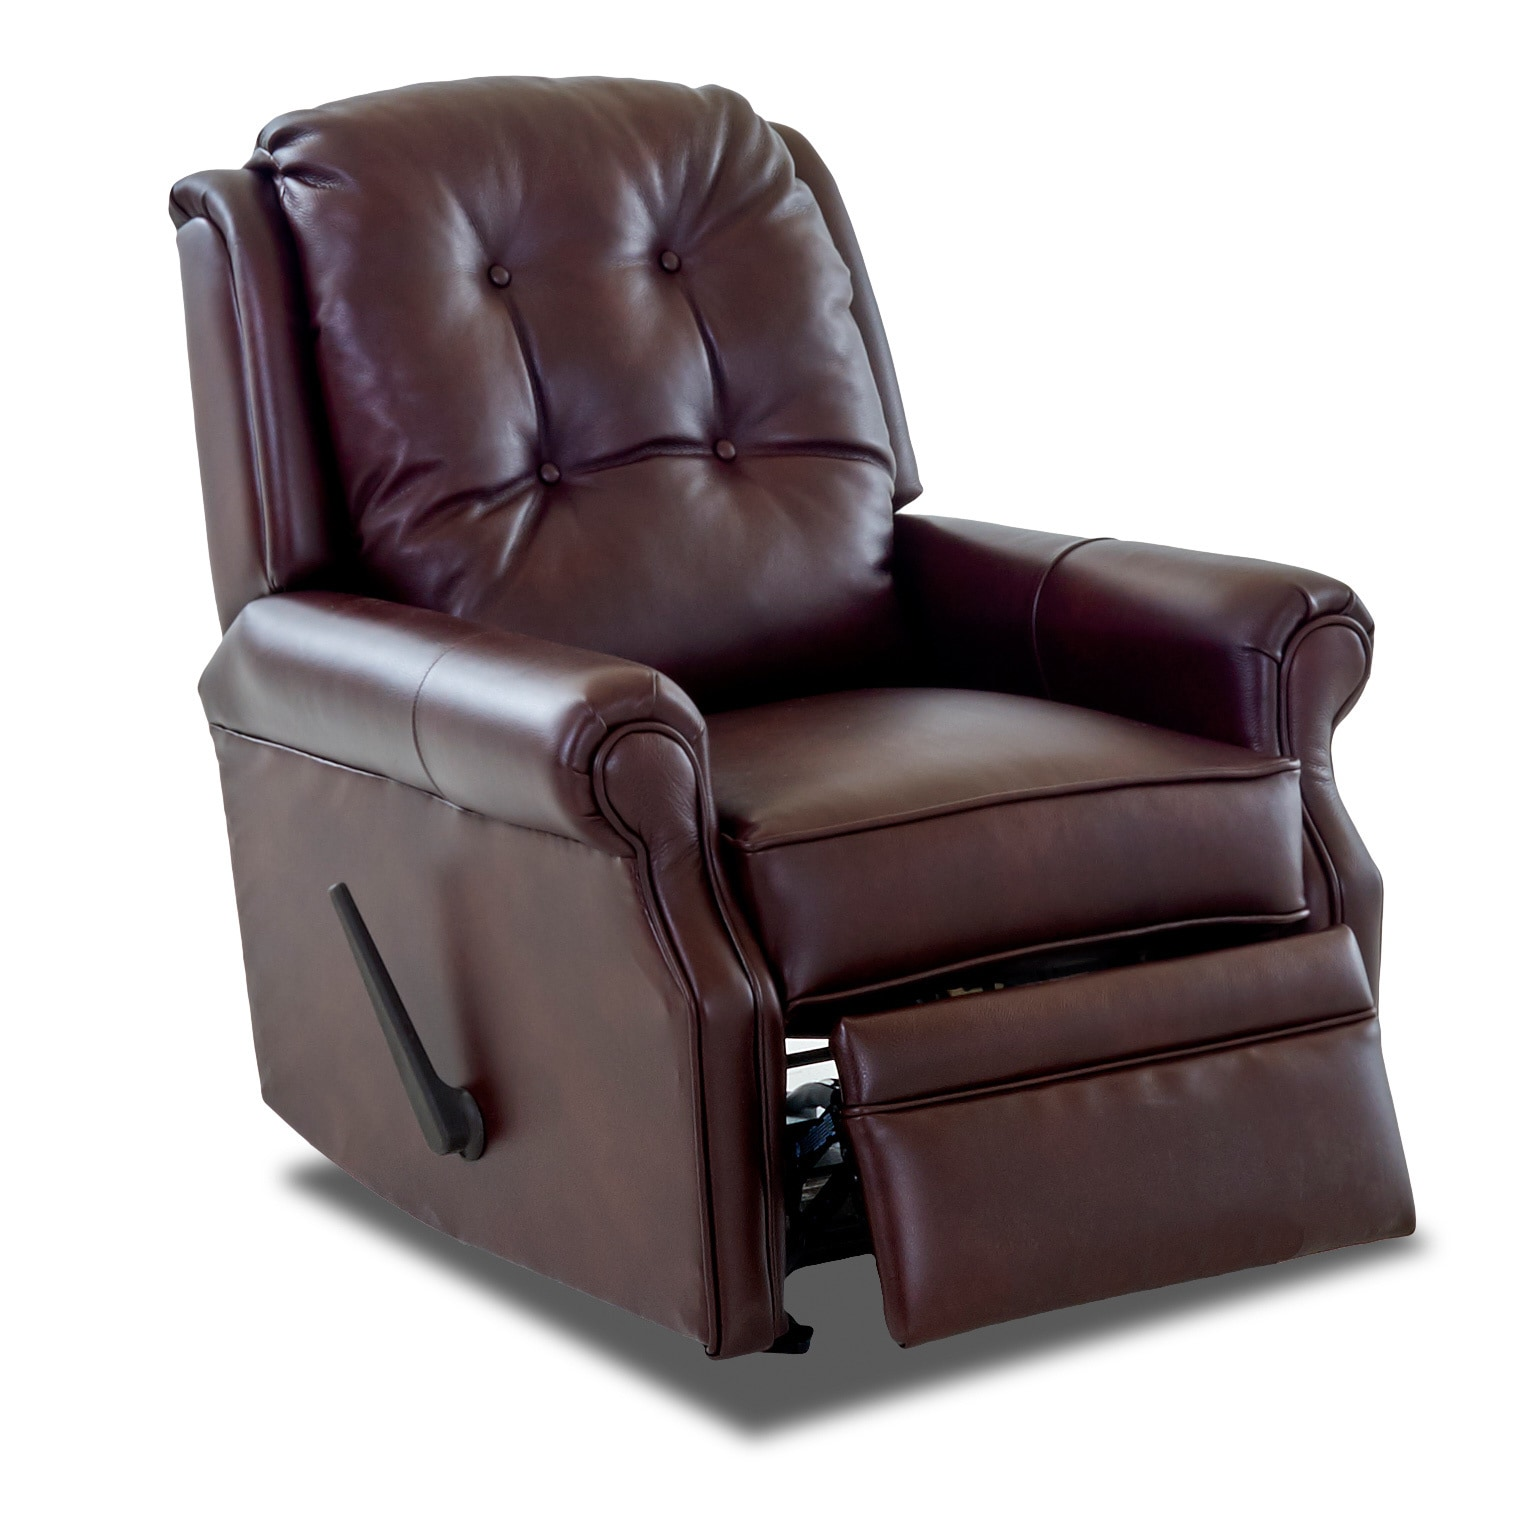 Leather Rocking Chair Made To Order Sand Key Leather Reclining Rocking Chair